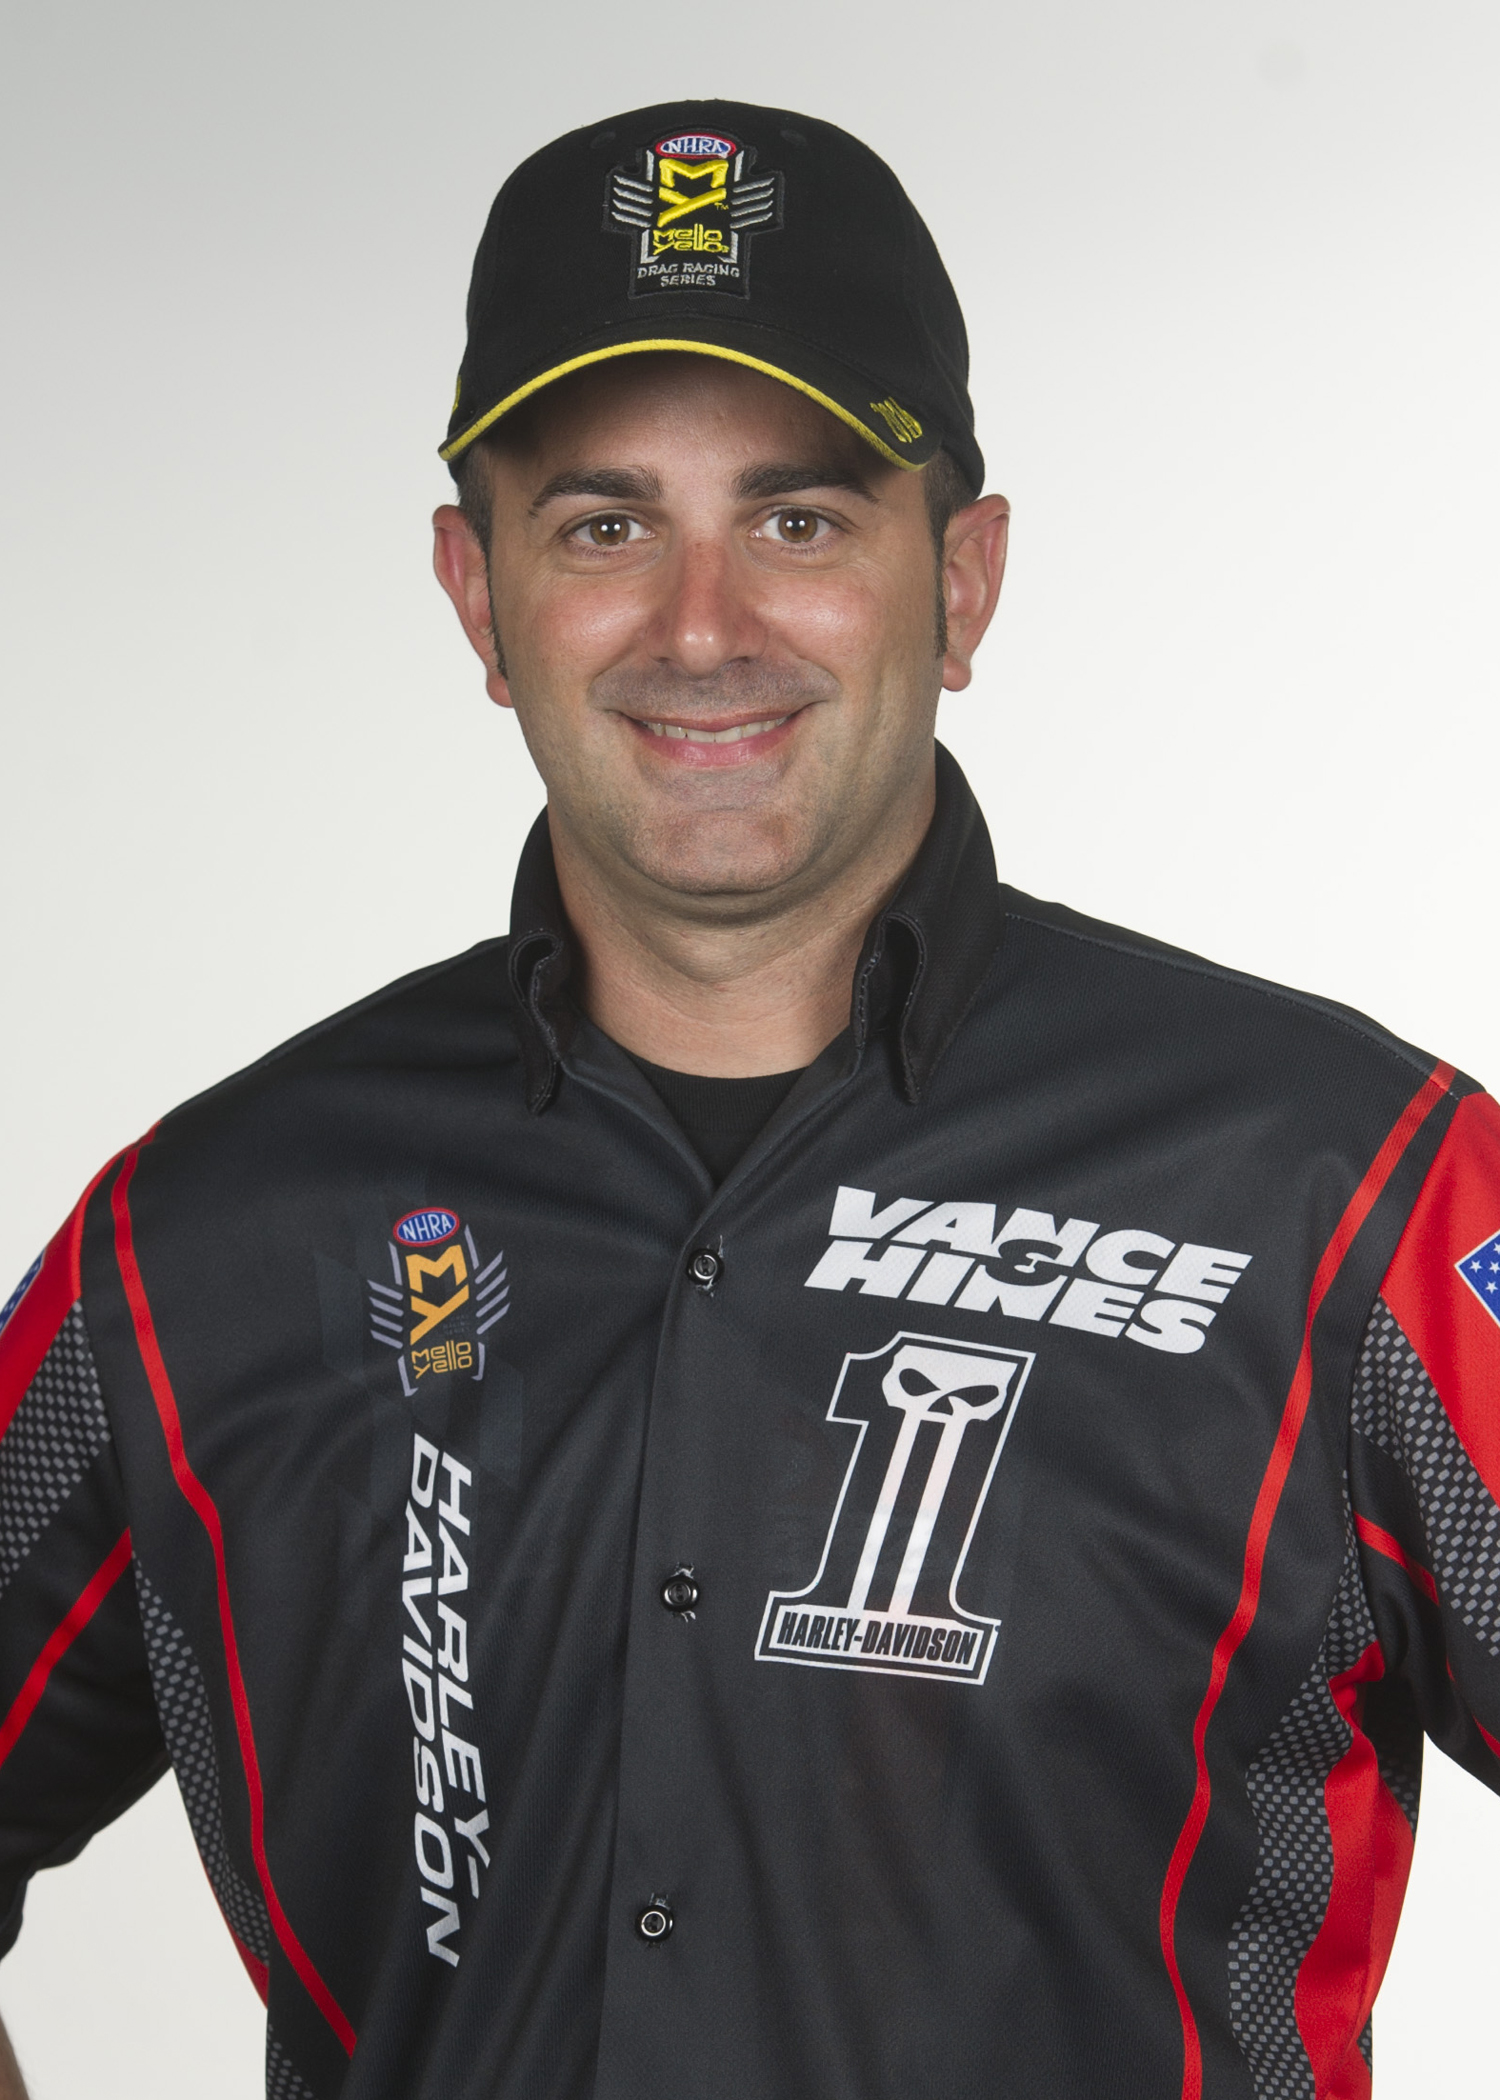 Aaa Insurance Careers: Eddie Krawiec Tops Atlanta Pro Stock Motorcycle Qualifying